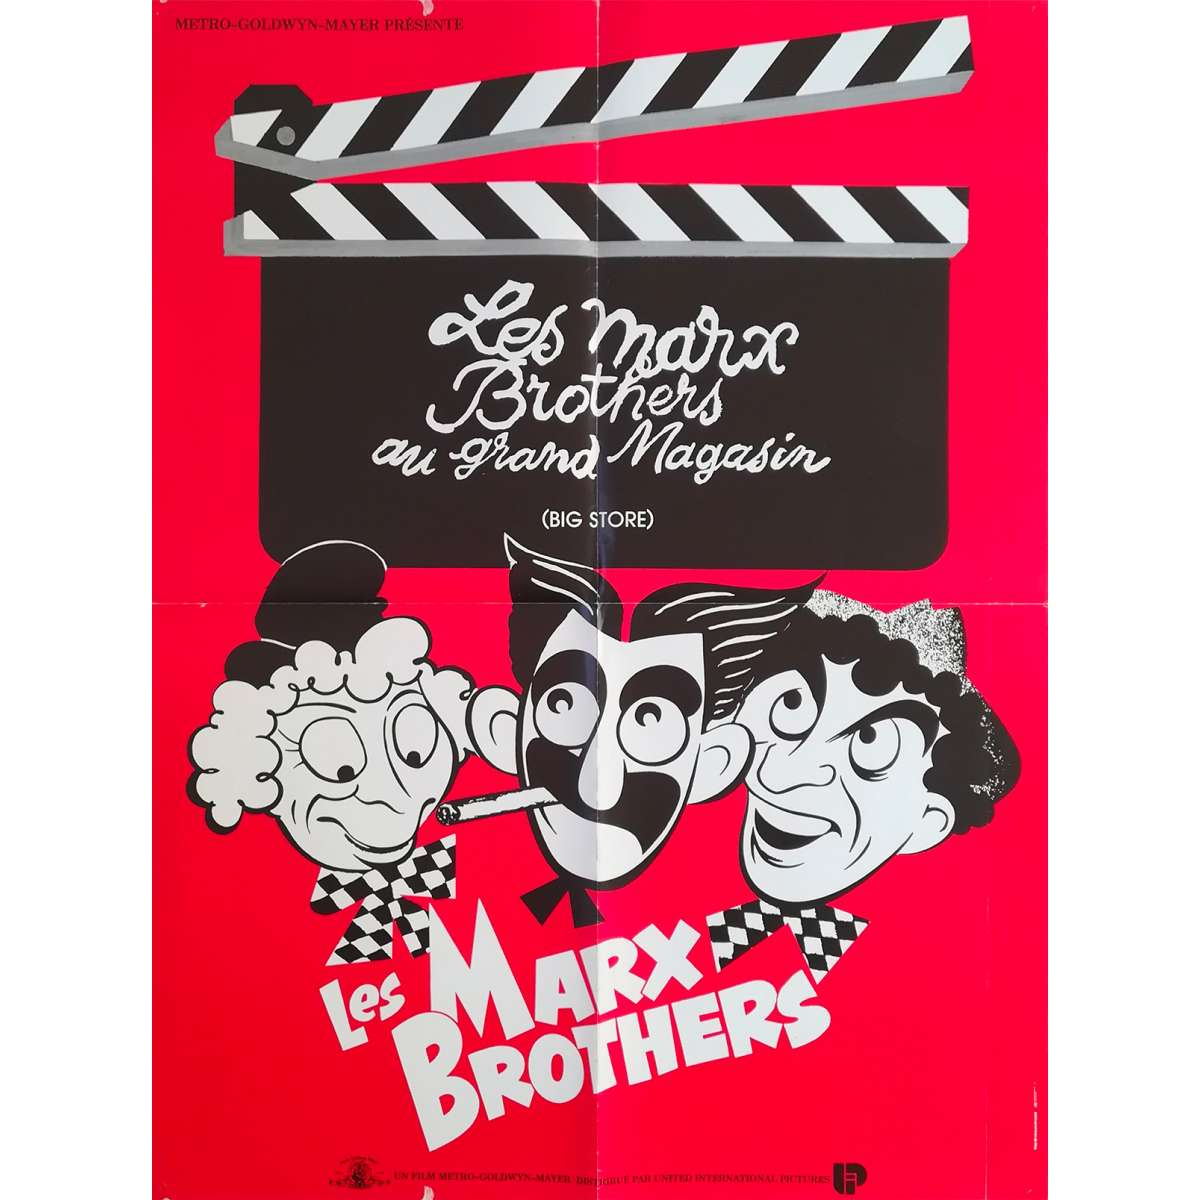 the big store original movie poster 23x32 in r1970 charles reisner the marx brothers